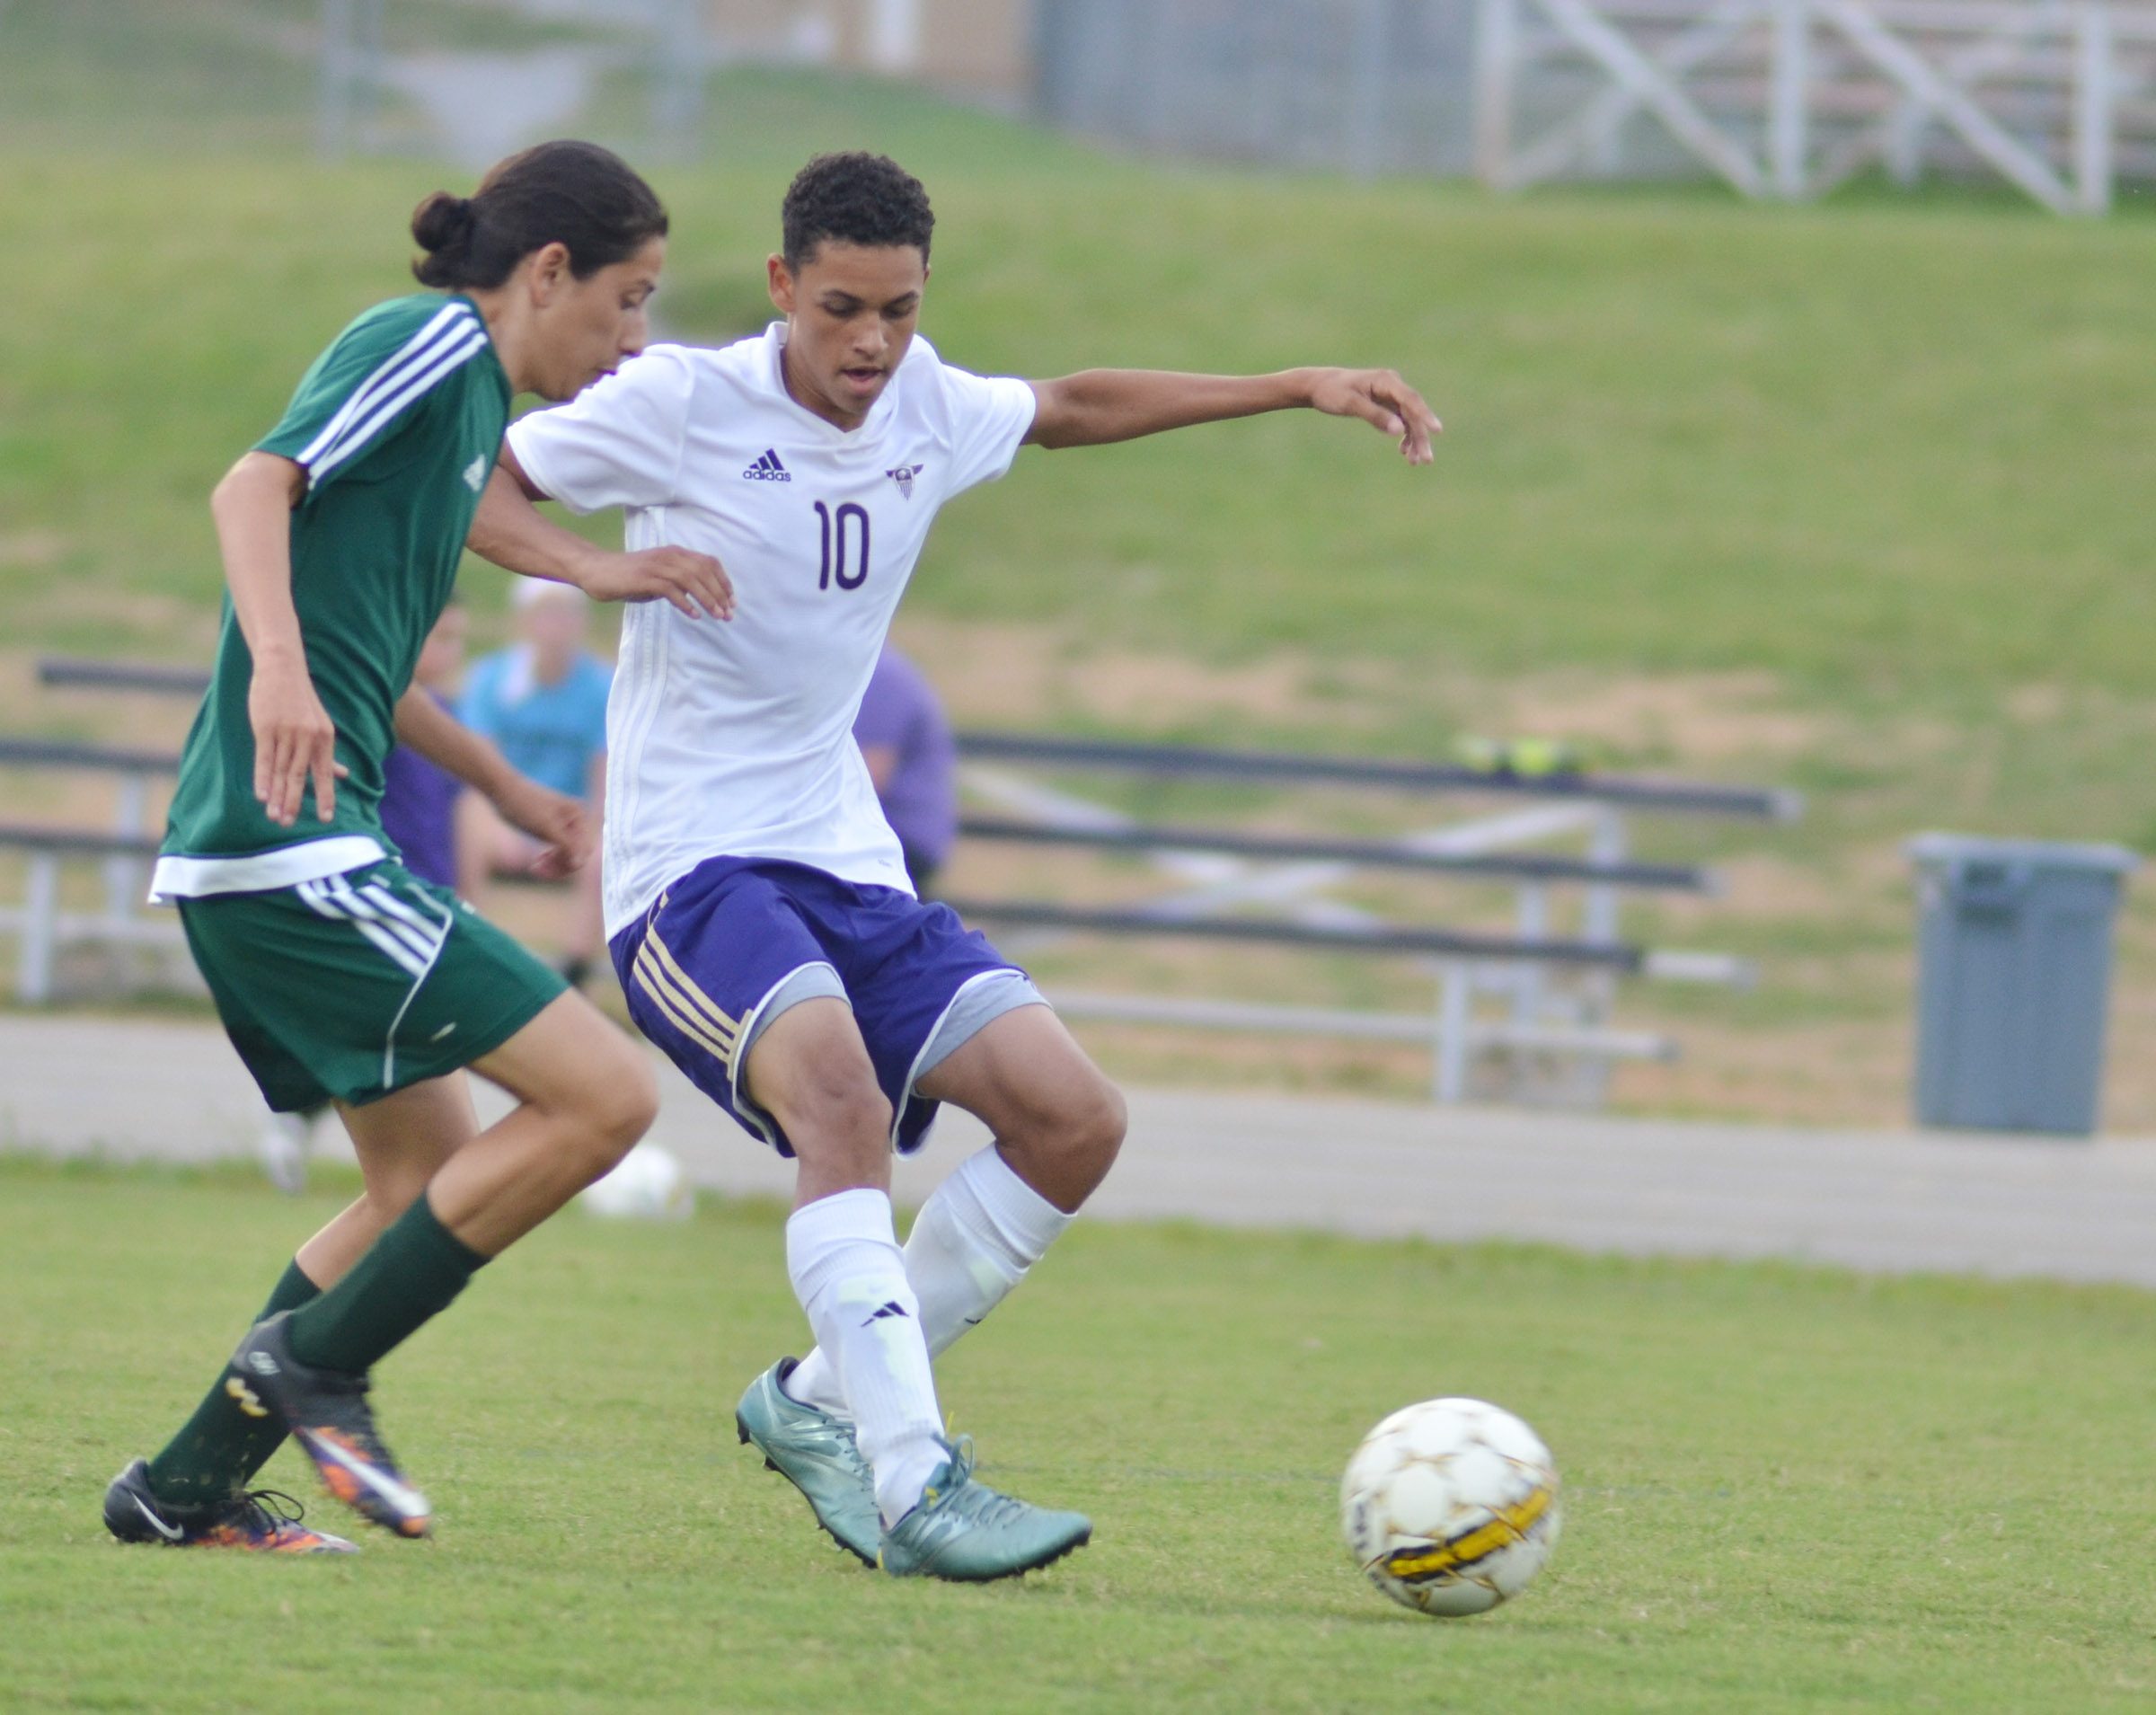 CHS sophomore Mikael Vaught kicks the ball.